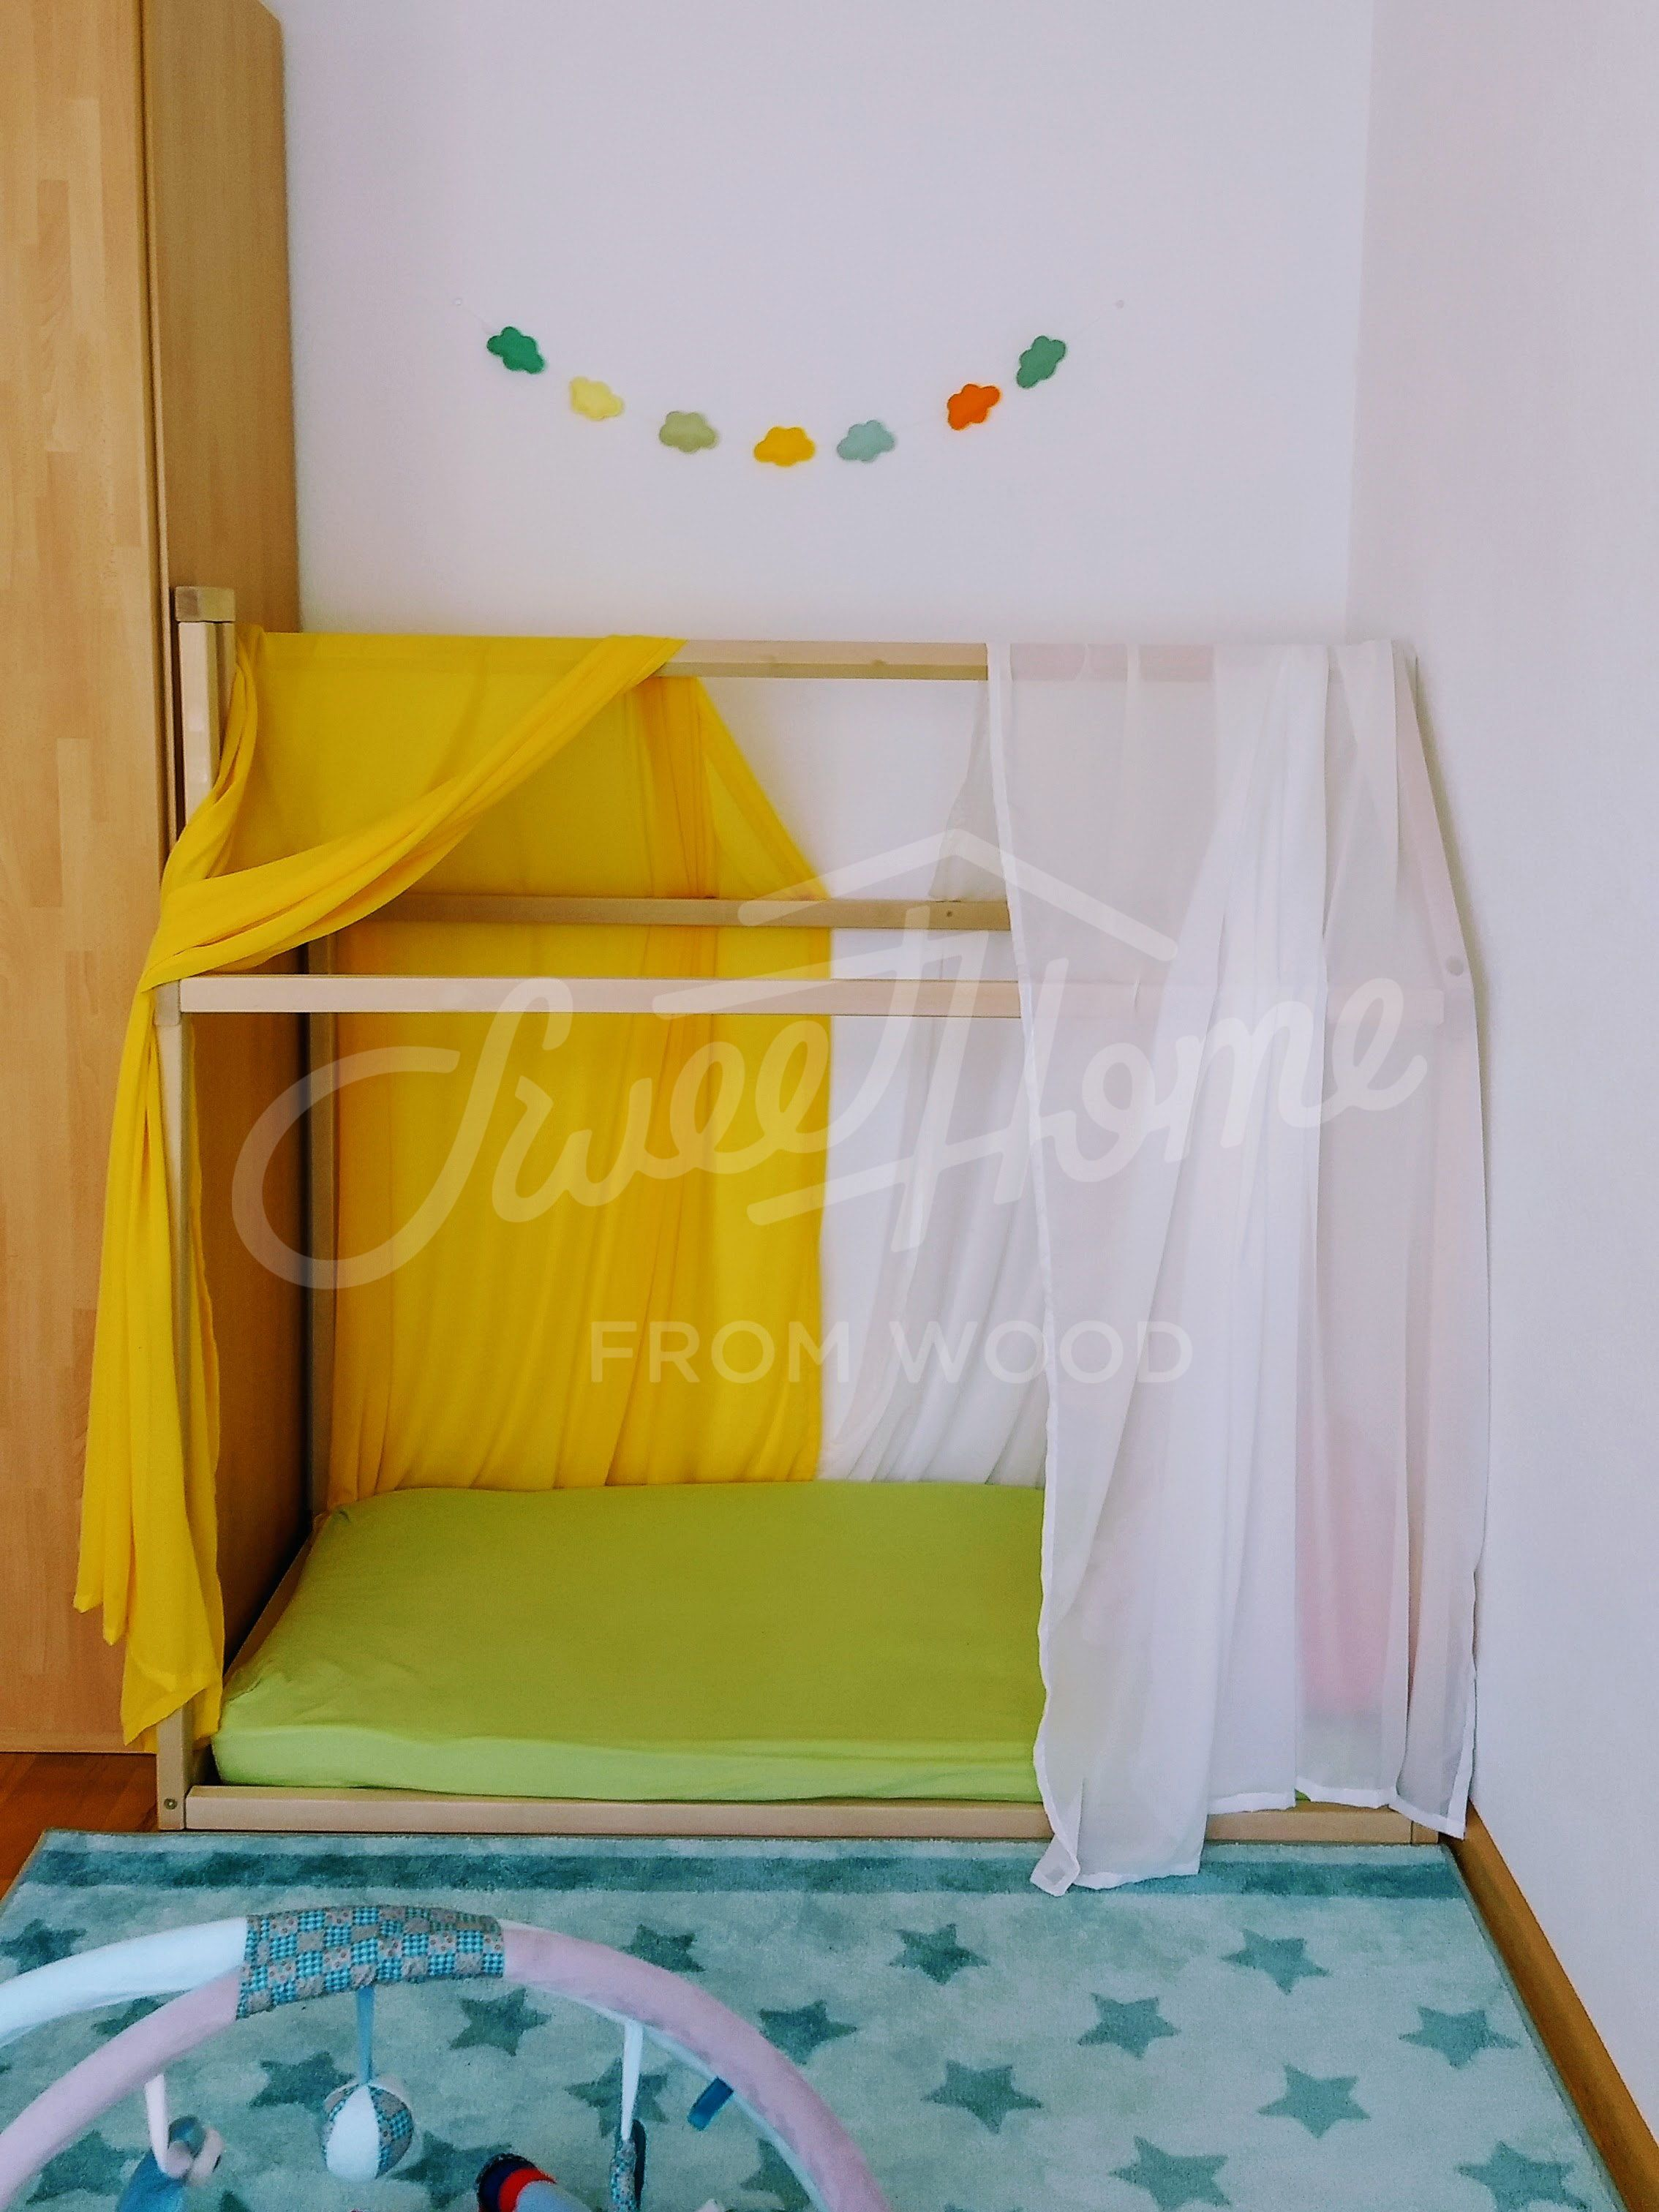 Toddler Bed House Shaped Bed Loft Bed Nursery Wood House Bed Home Montessori Toy Frame Bed Original Bed Home Bed Developing Toy Slats Kids Room Accessories Kids Bed Frames House Frame